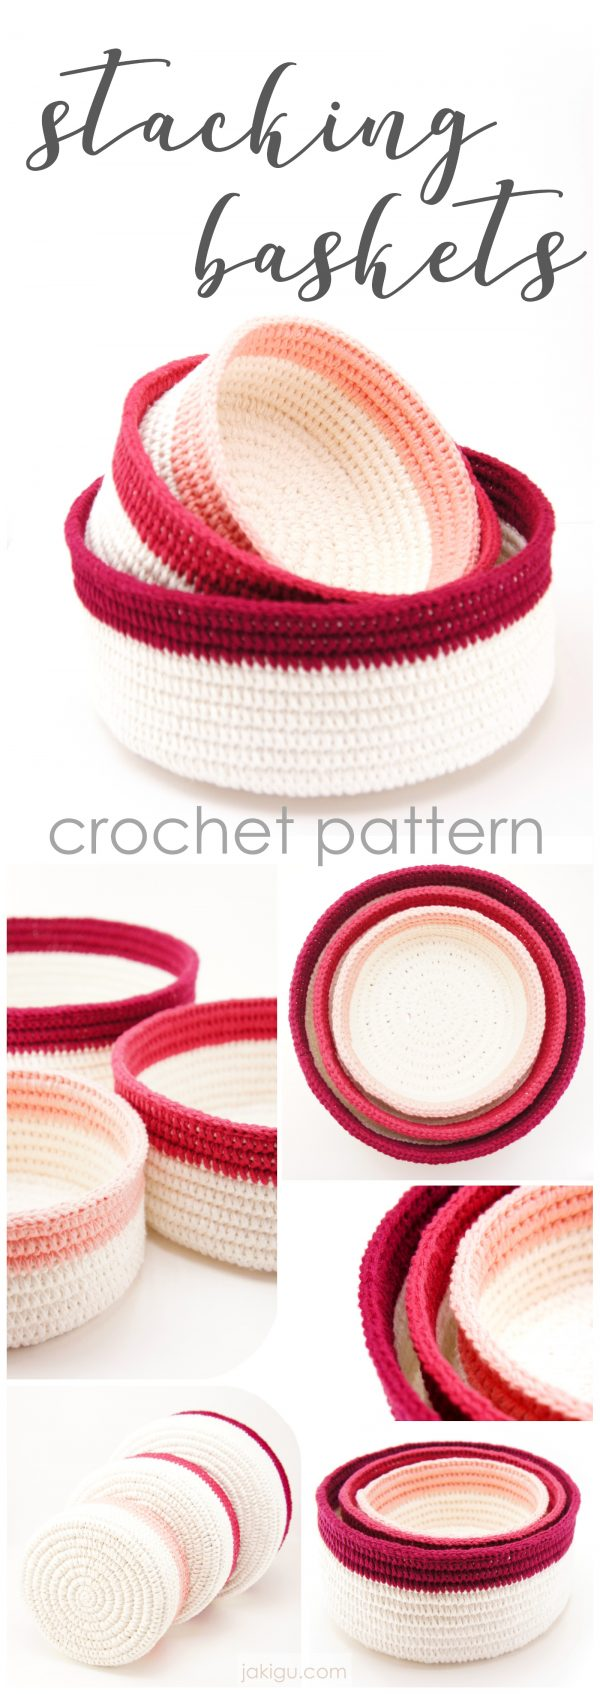 An exquisite beginner's guide to coiled crochet by JaKiGu